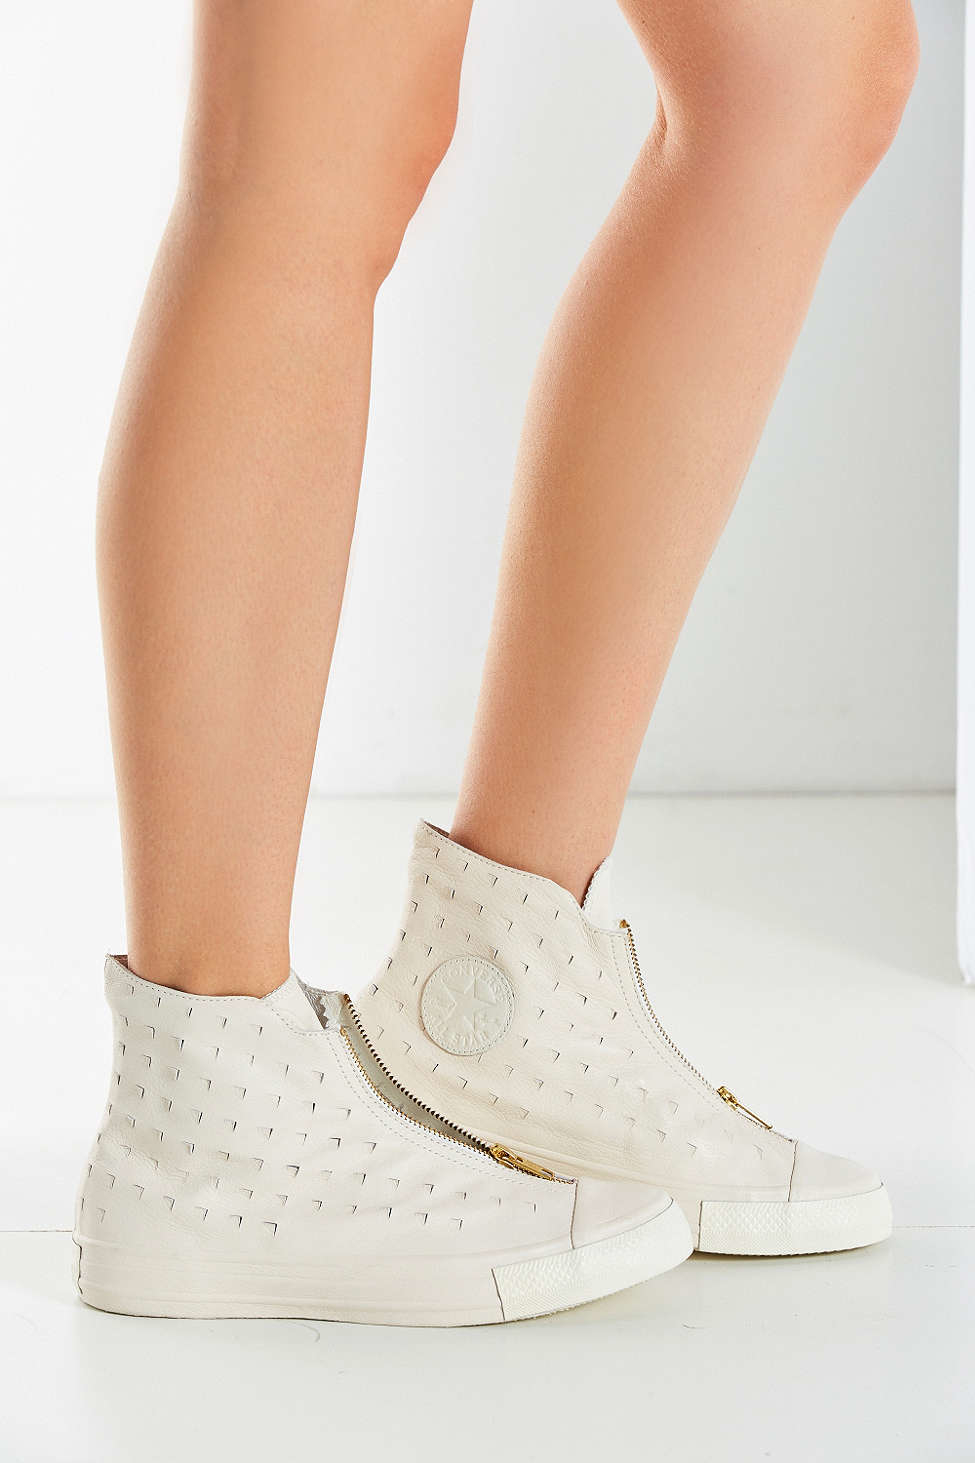 Converse Canvas Chuck Taylor All Star Shroud Sneaker in White - Lyst